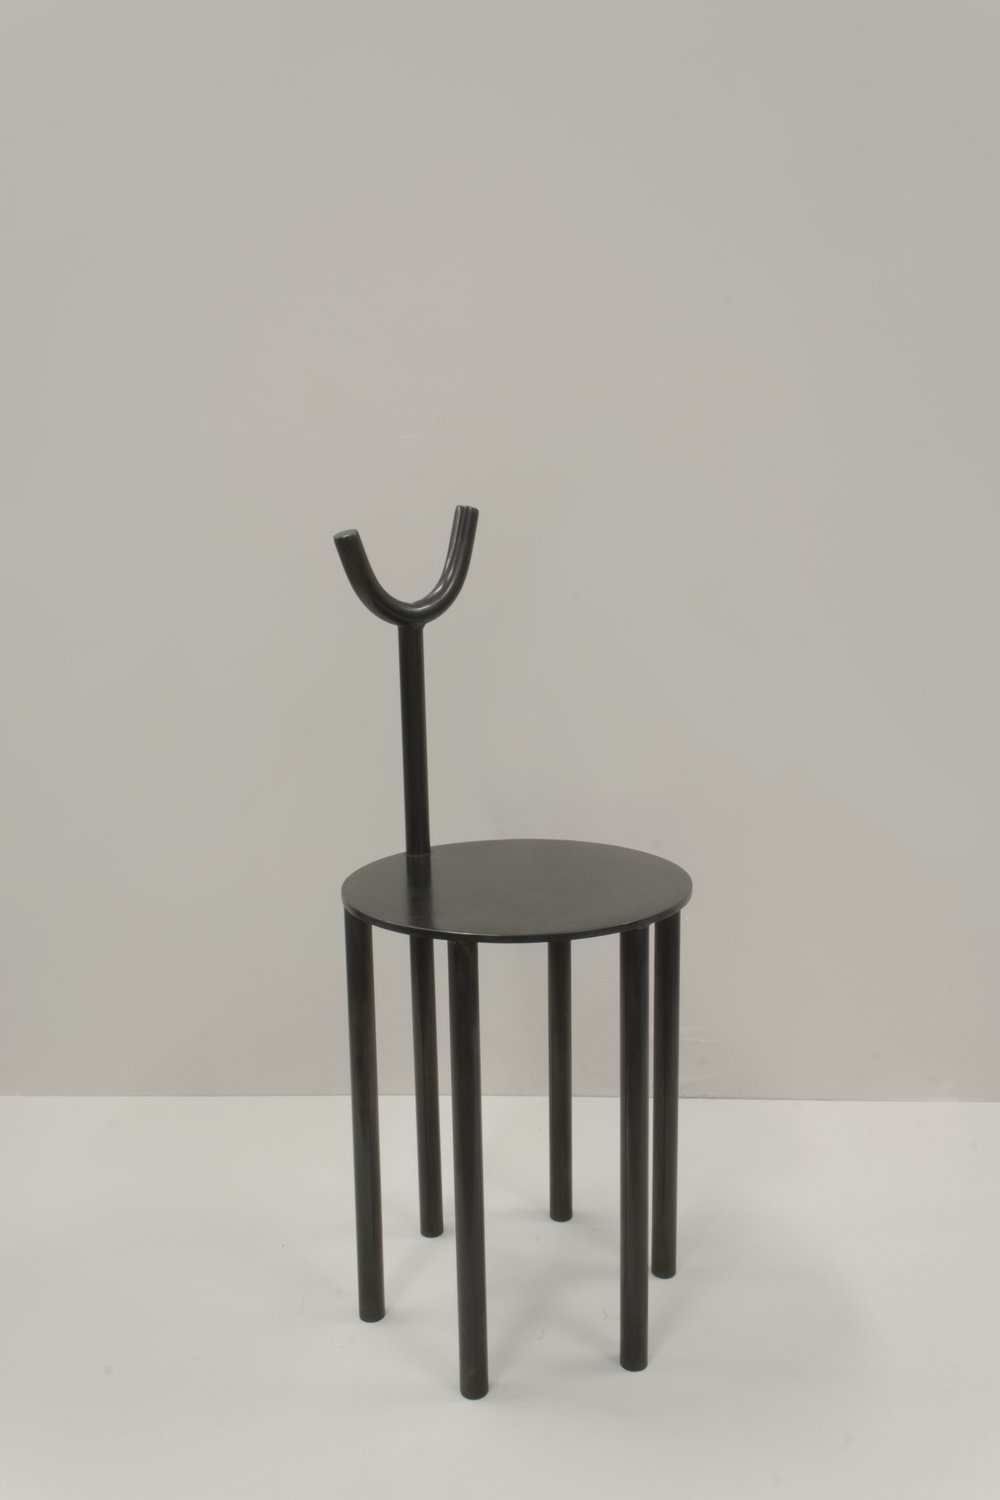 walac. studio collectible sculptural chair in blackened steel